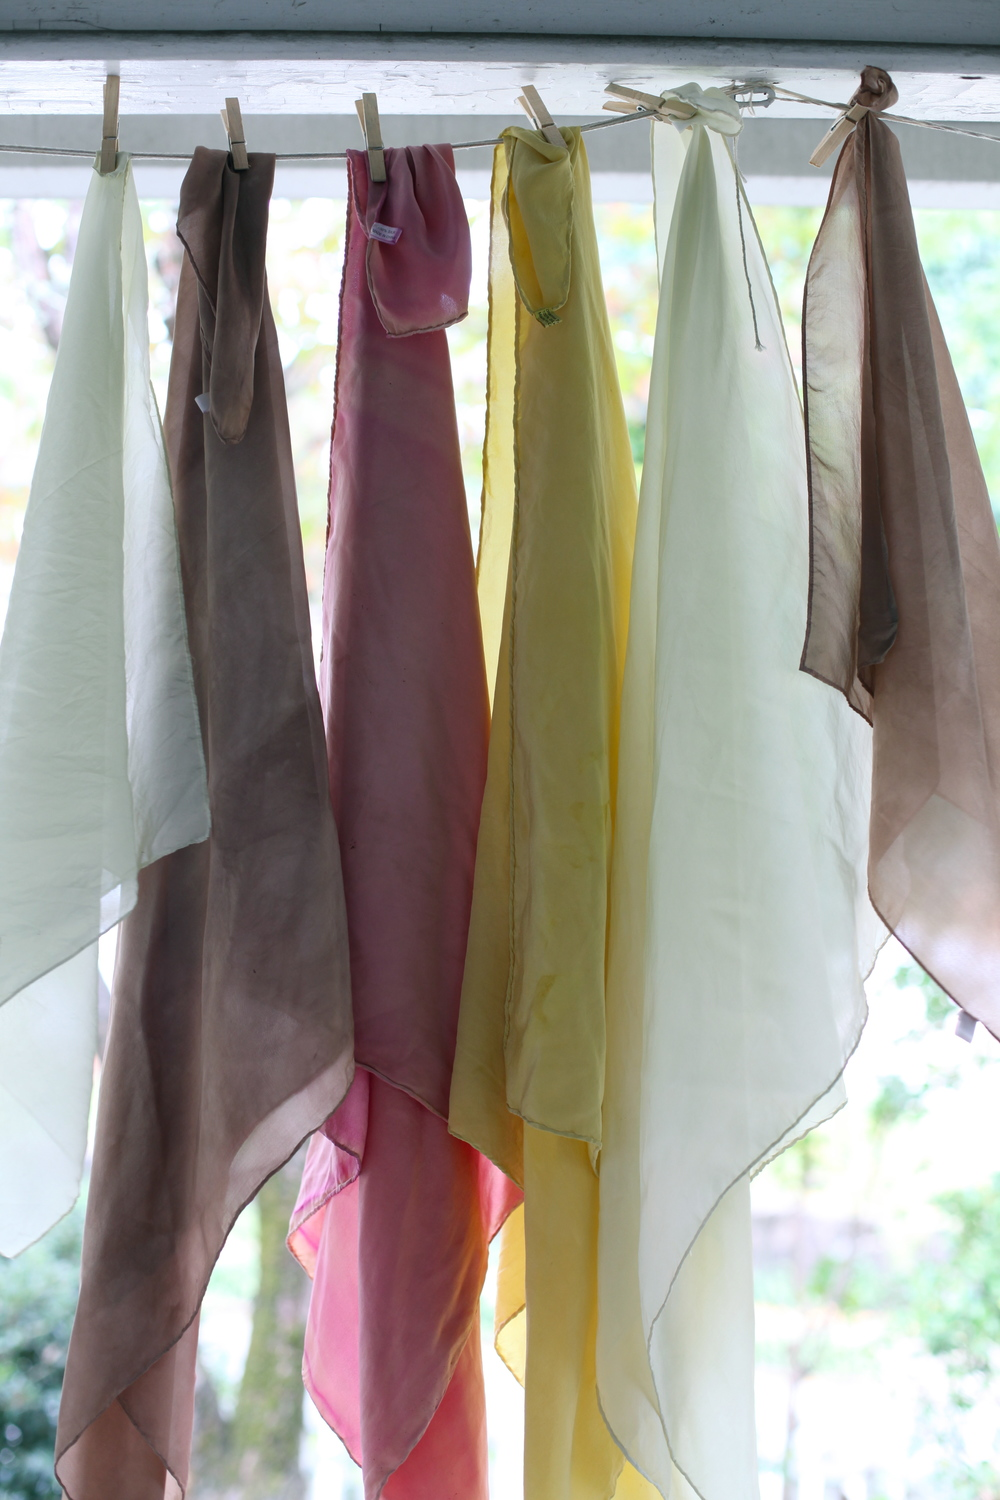 Naturally dyed silk with fennel, turkey tail mushroom, pokeweed berry, + goldenrod